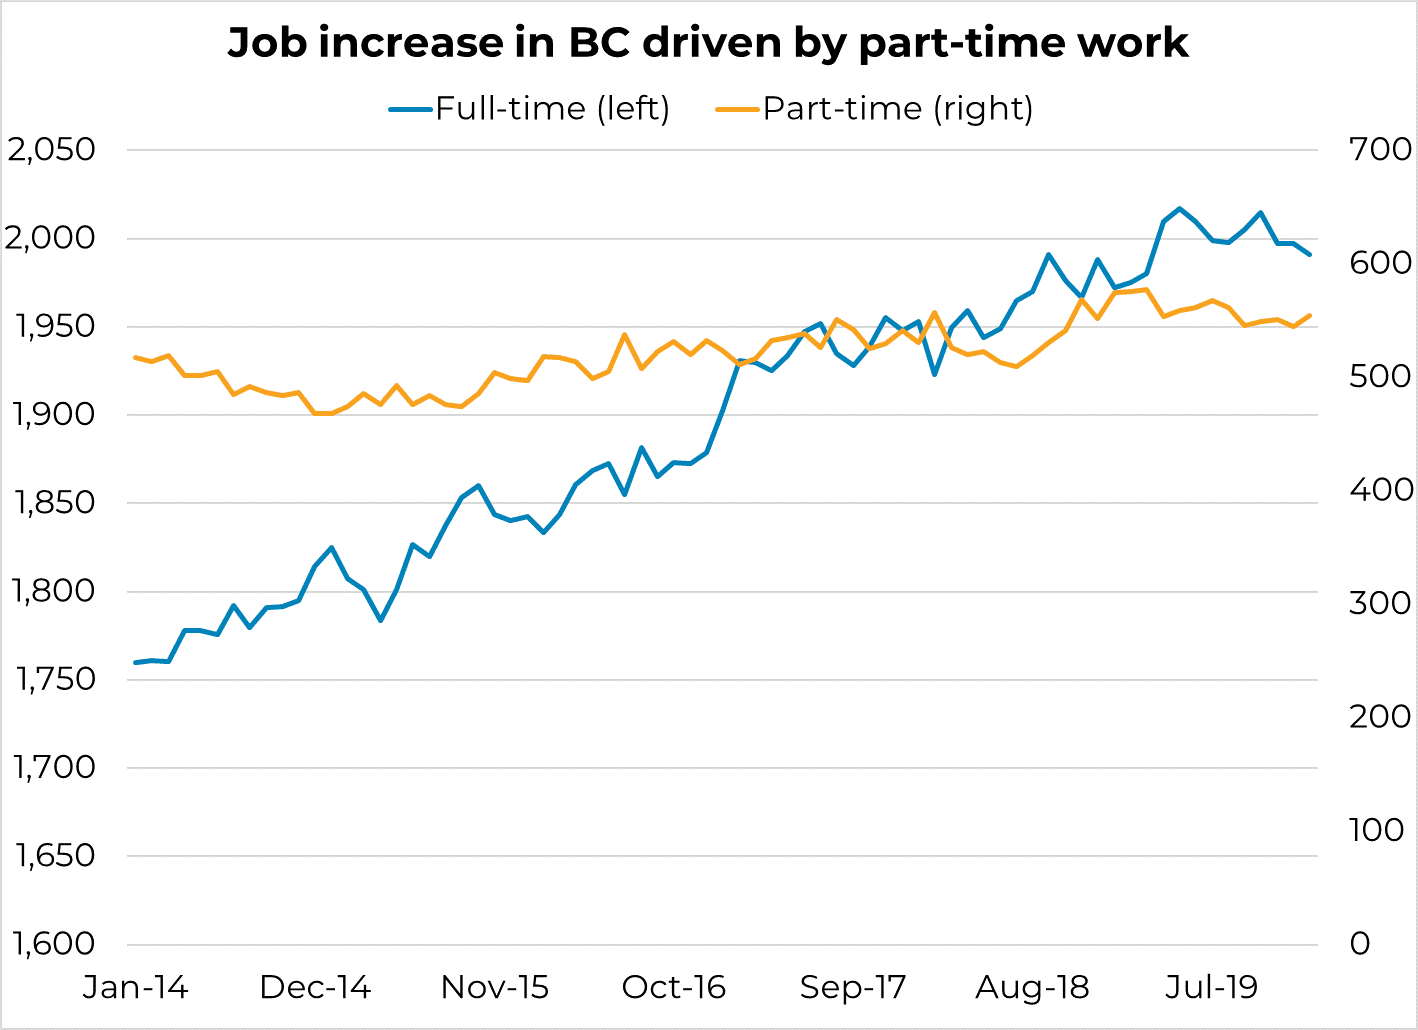 Job increases in BC driven by part-time work